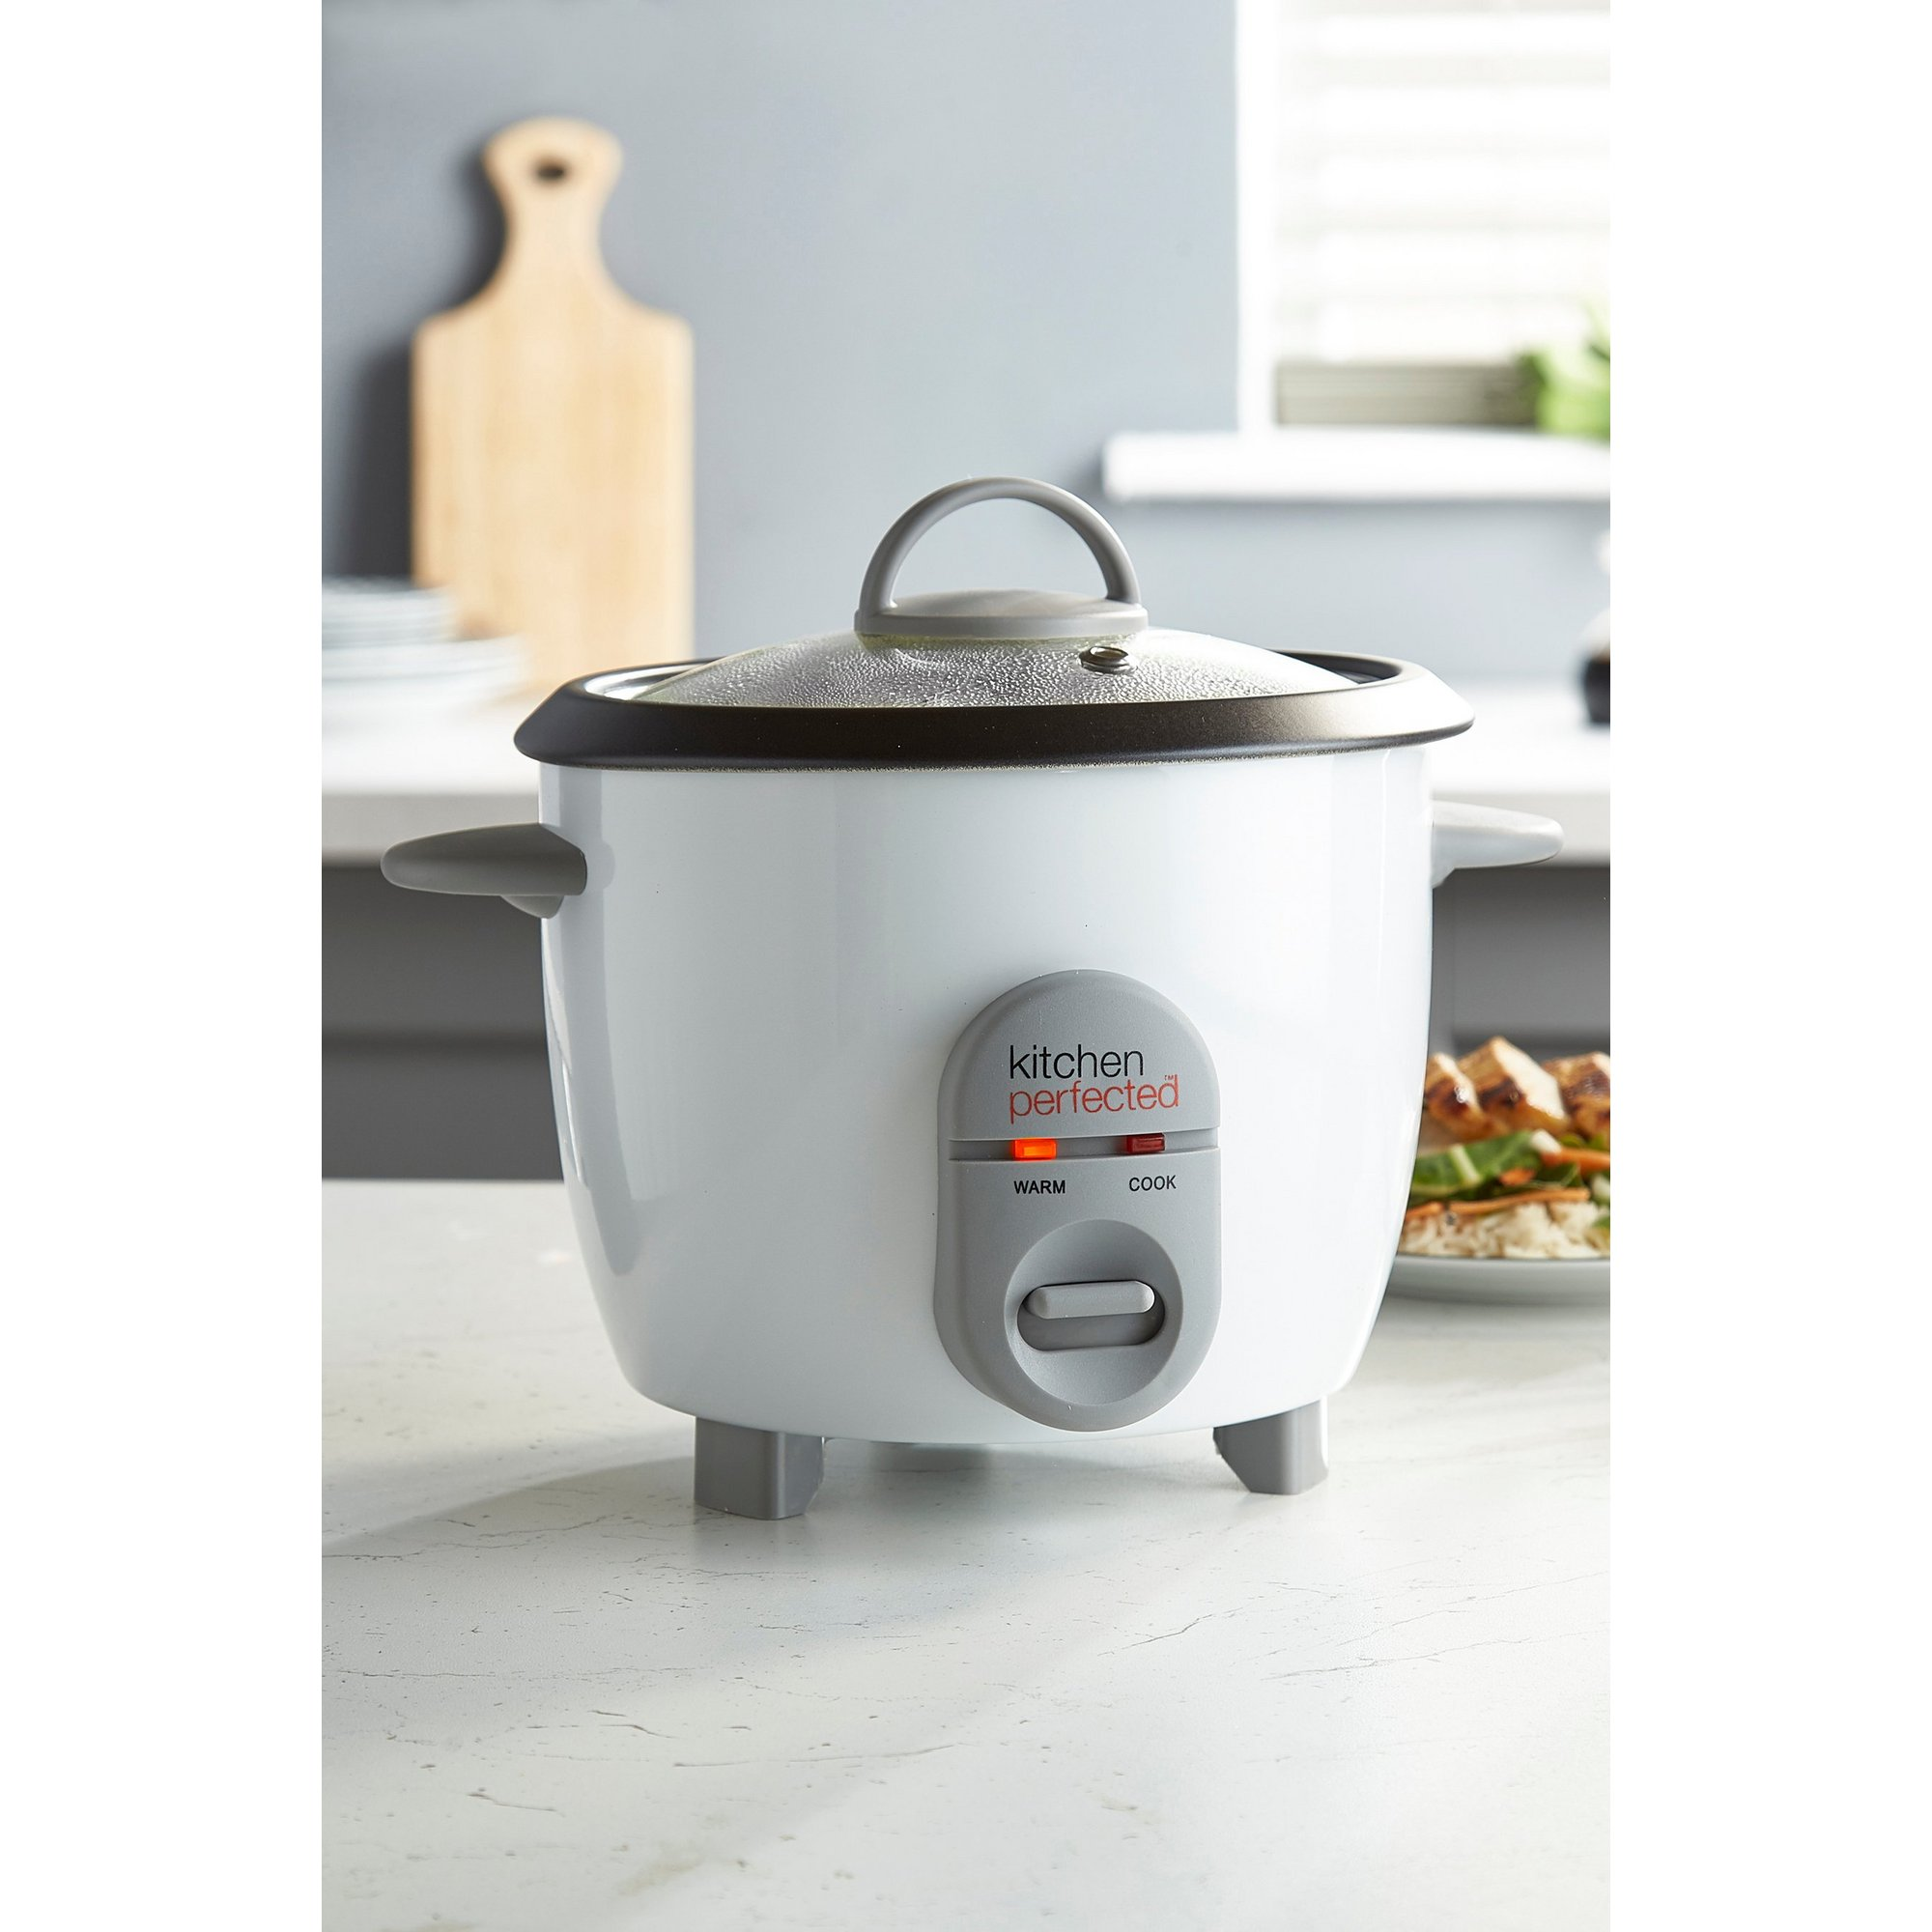 Image of Kitchen Perfected 0.8L Rice Cooker - Lloytron